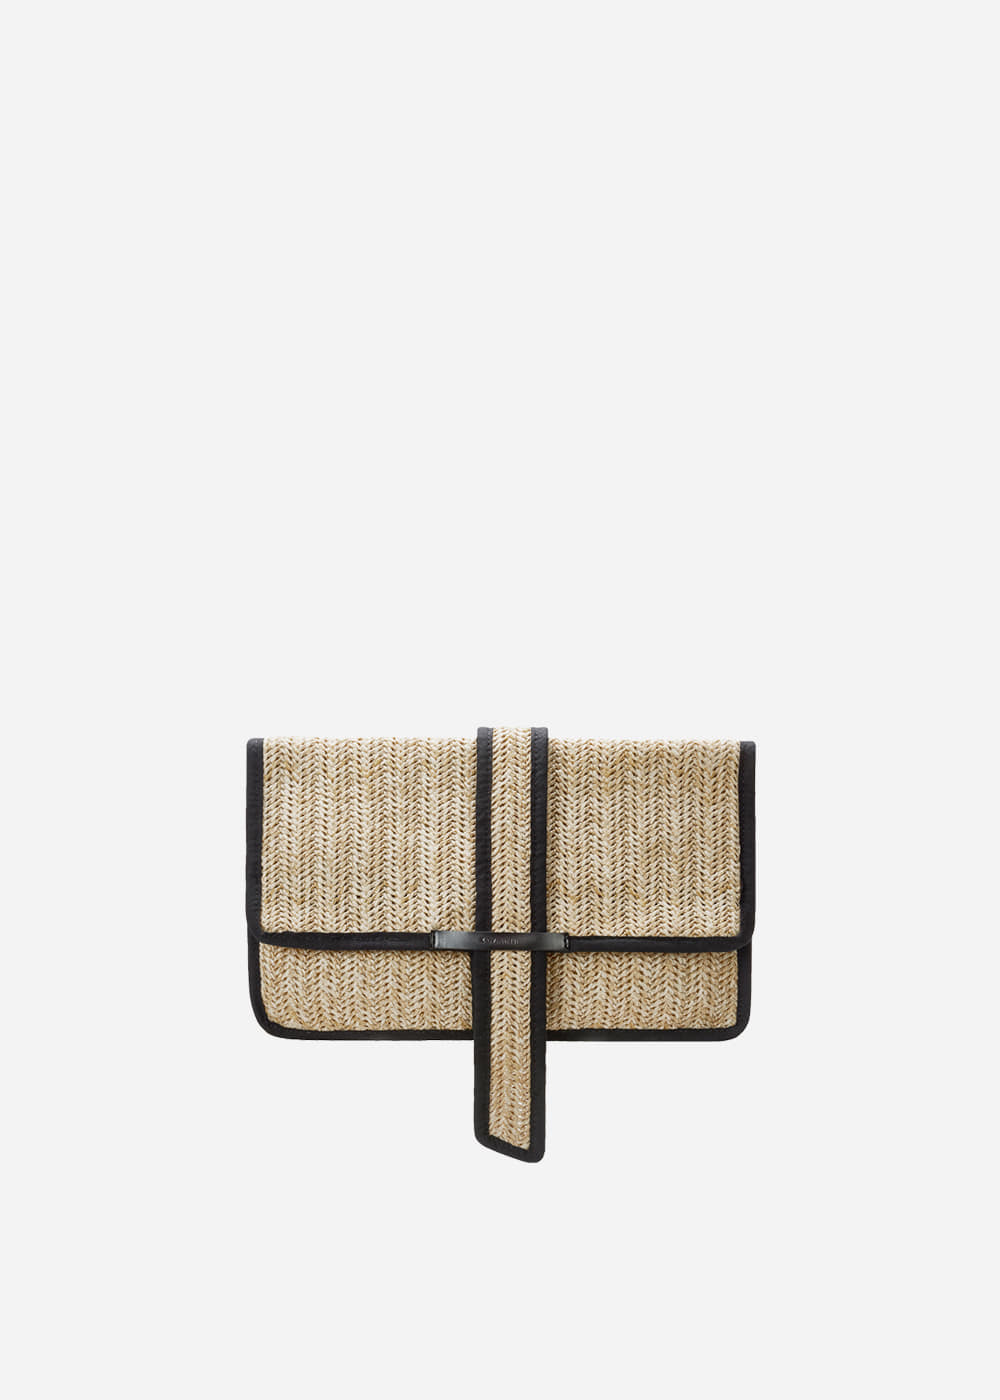 Outlined Rattan Clutch